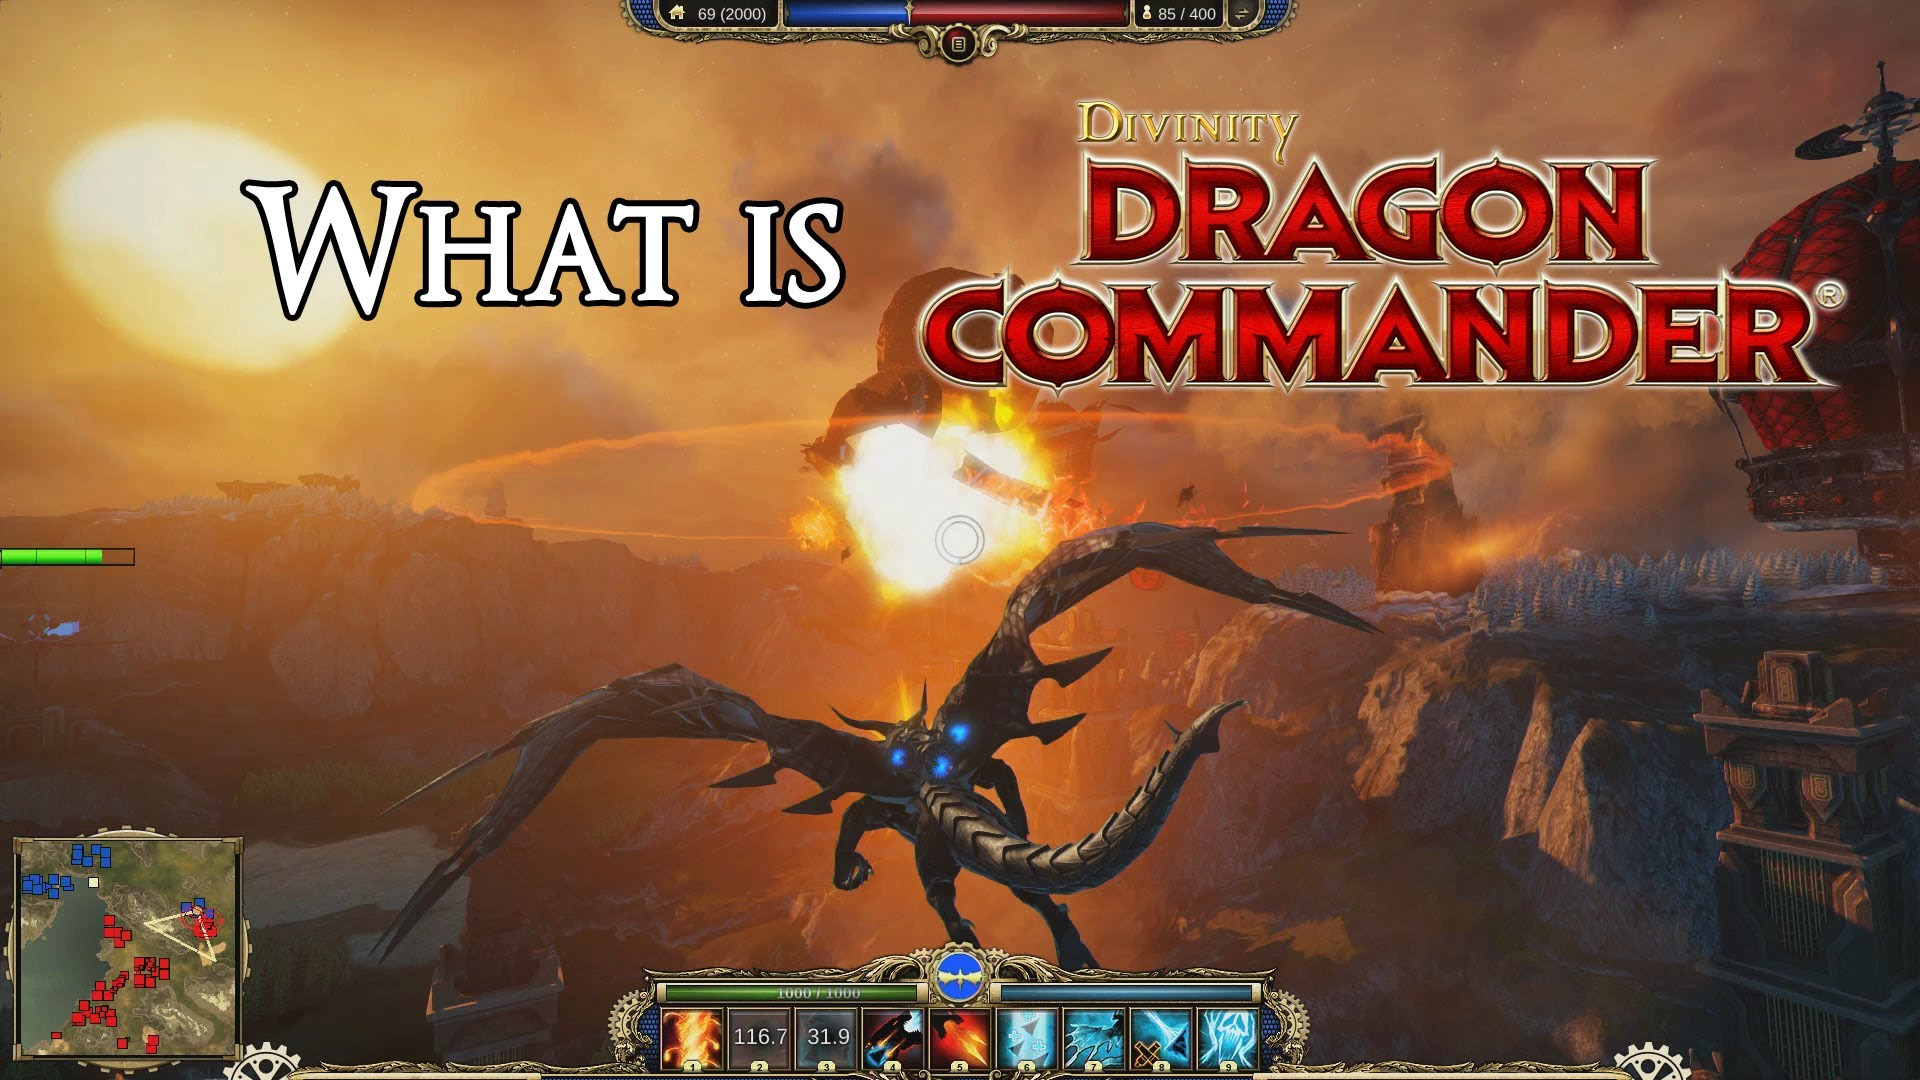 Divinity: Dragon Commander – What is Divinity Trailer